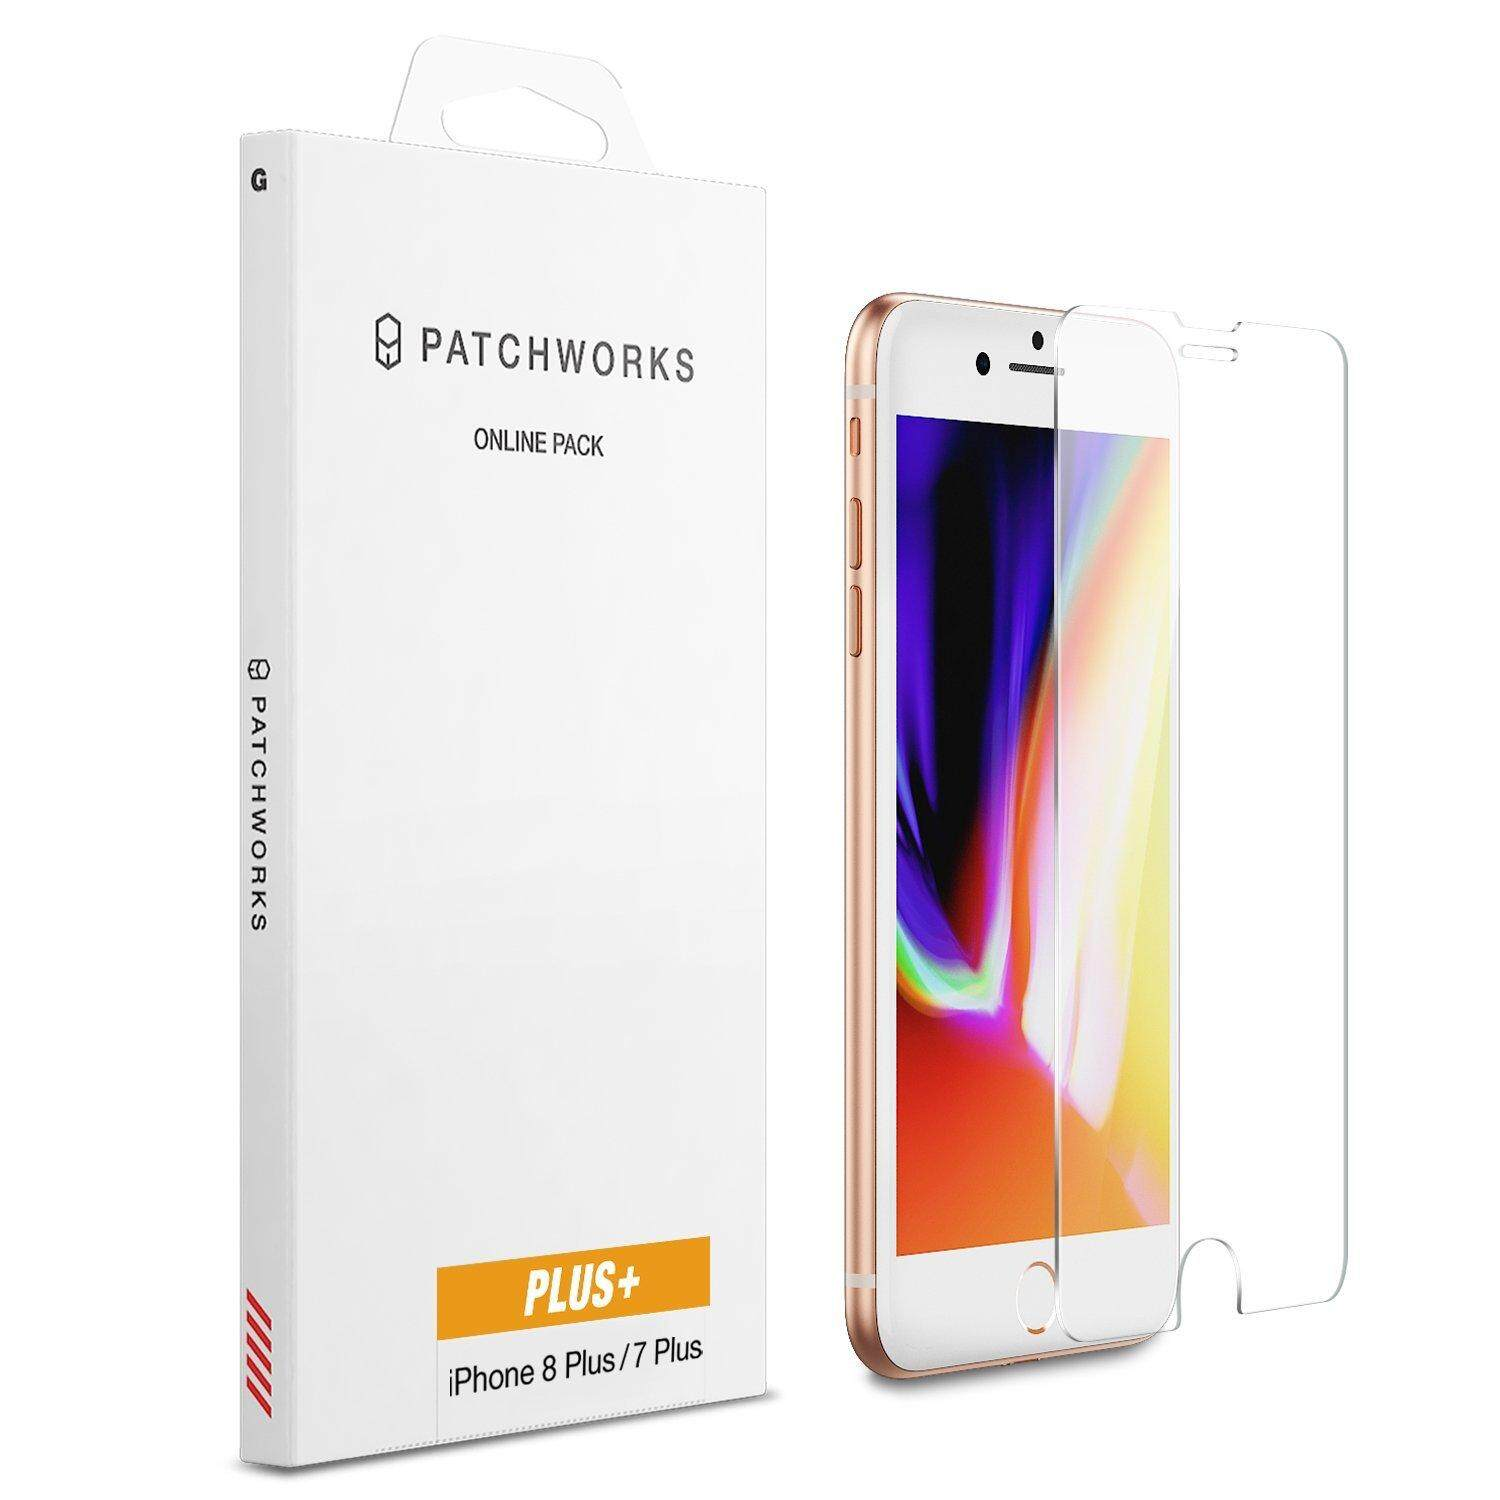 iPhone 8 Plus 7 Plus 6s Plus 6 Plus Screen Protector, Patchworks ITG Plus Made in Japan 9H 0.33mm Beveled Edge Scratch Resistant Oleophobic Coated Tempered Glass for iPhone 8/7/6s/6 Plus - intl